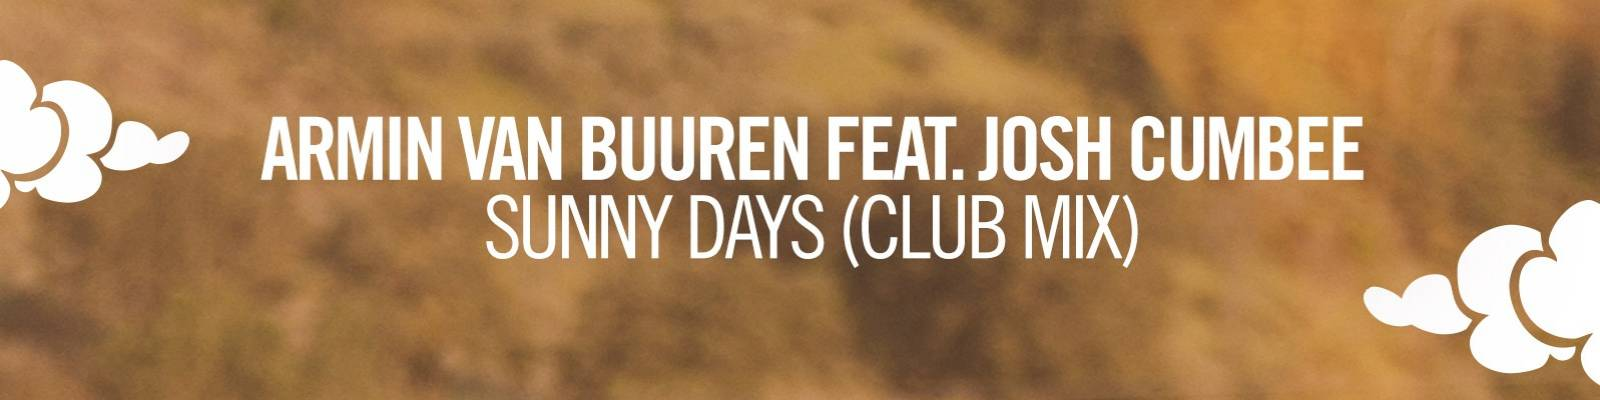 Armin van Buuren feat. Josh Cumbee – Sunny Days (Club Mix) [Official Music Video]